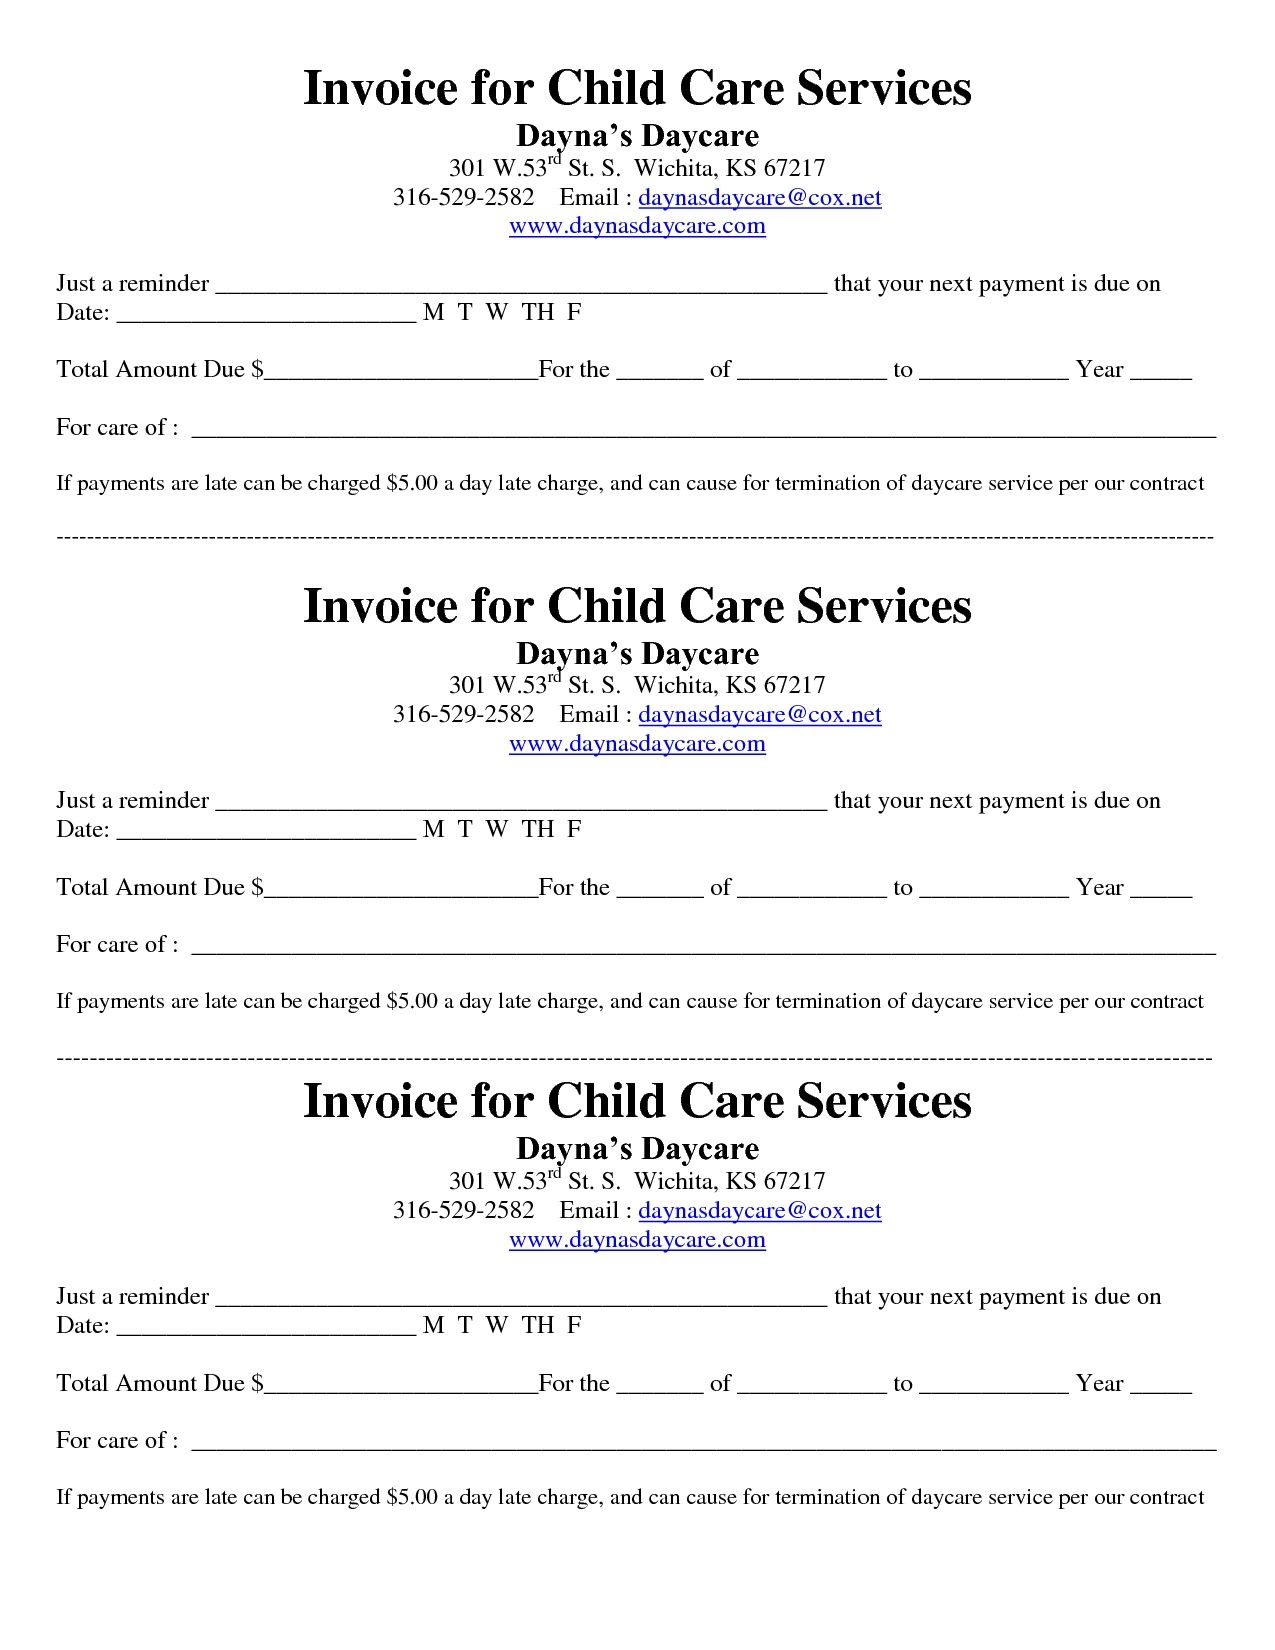 Child Care ReceiptInvoice  Jordi Preschool    Daycare